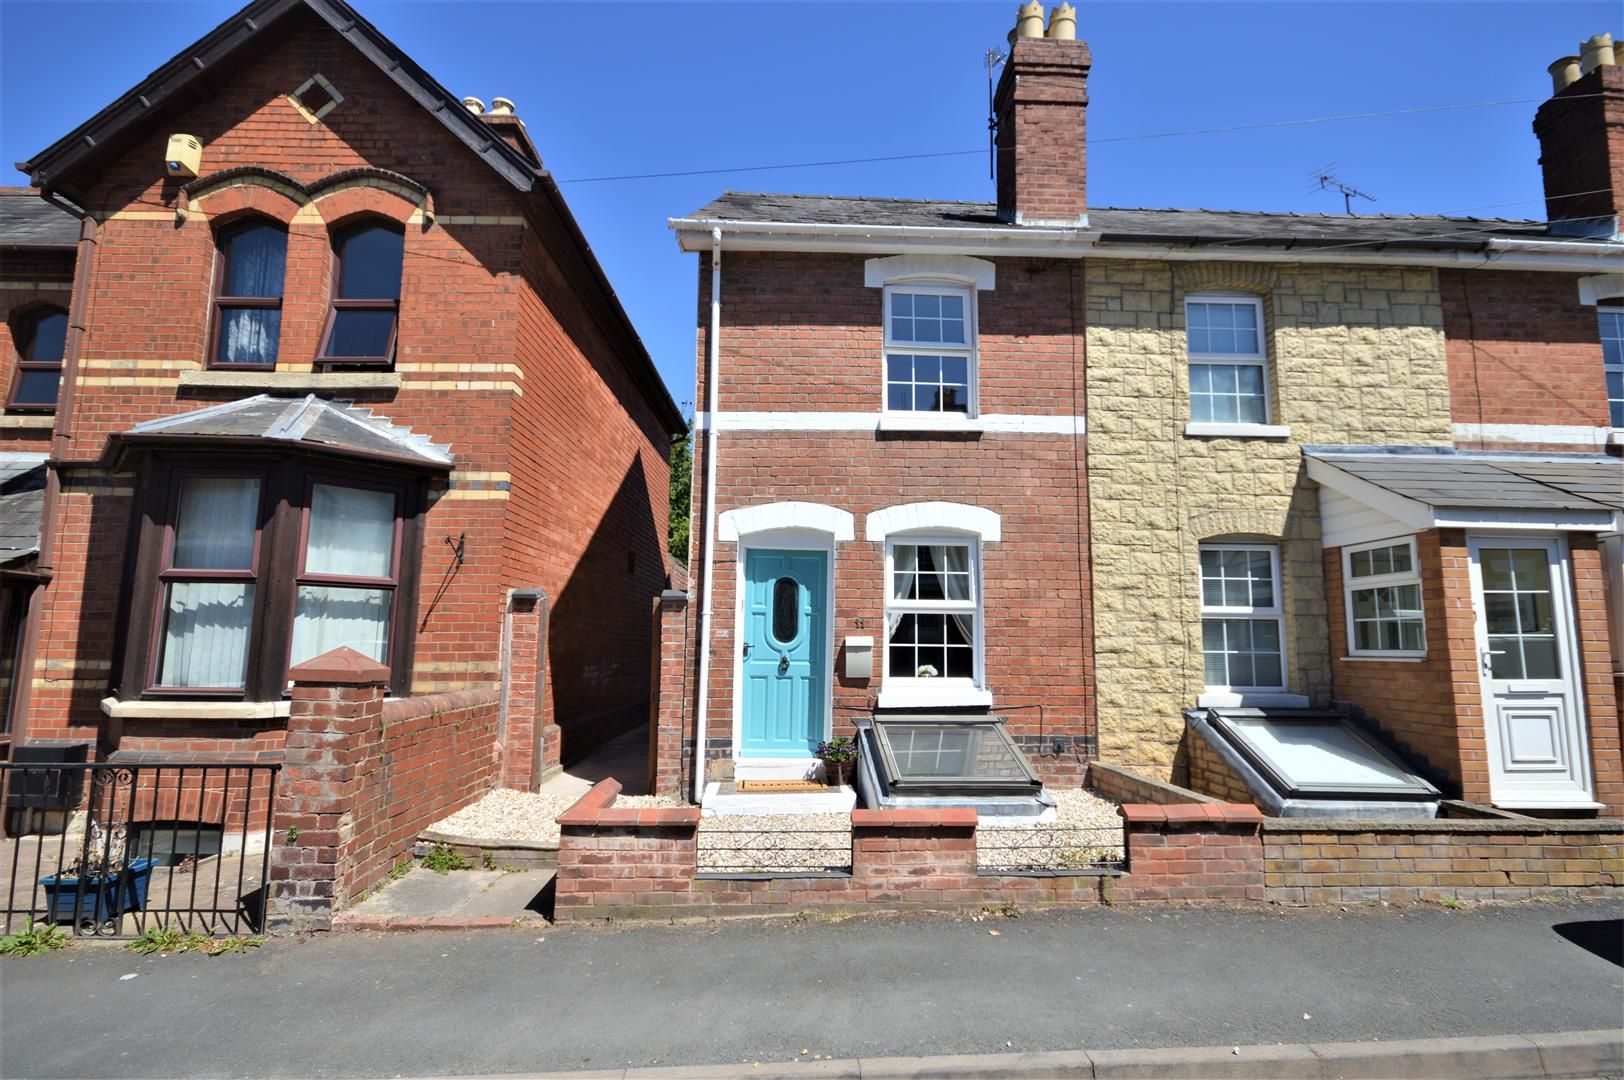 2 bed semi-detached for sale, HR1